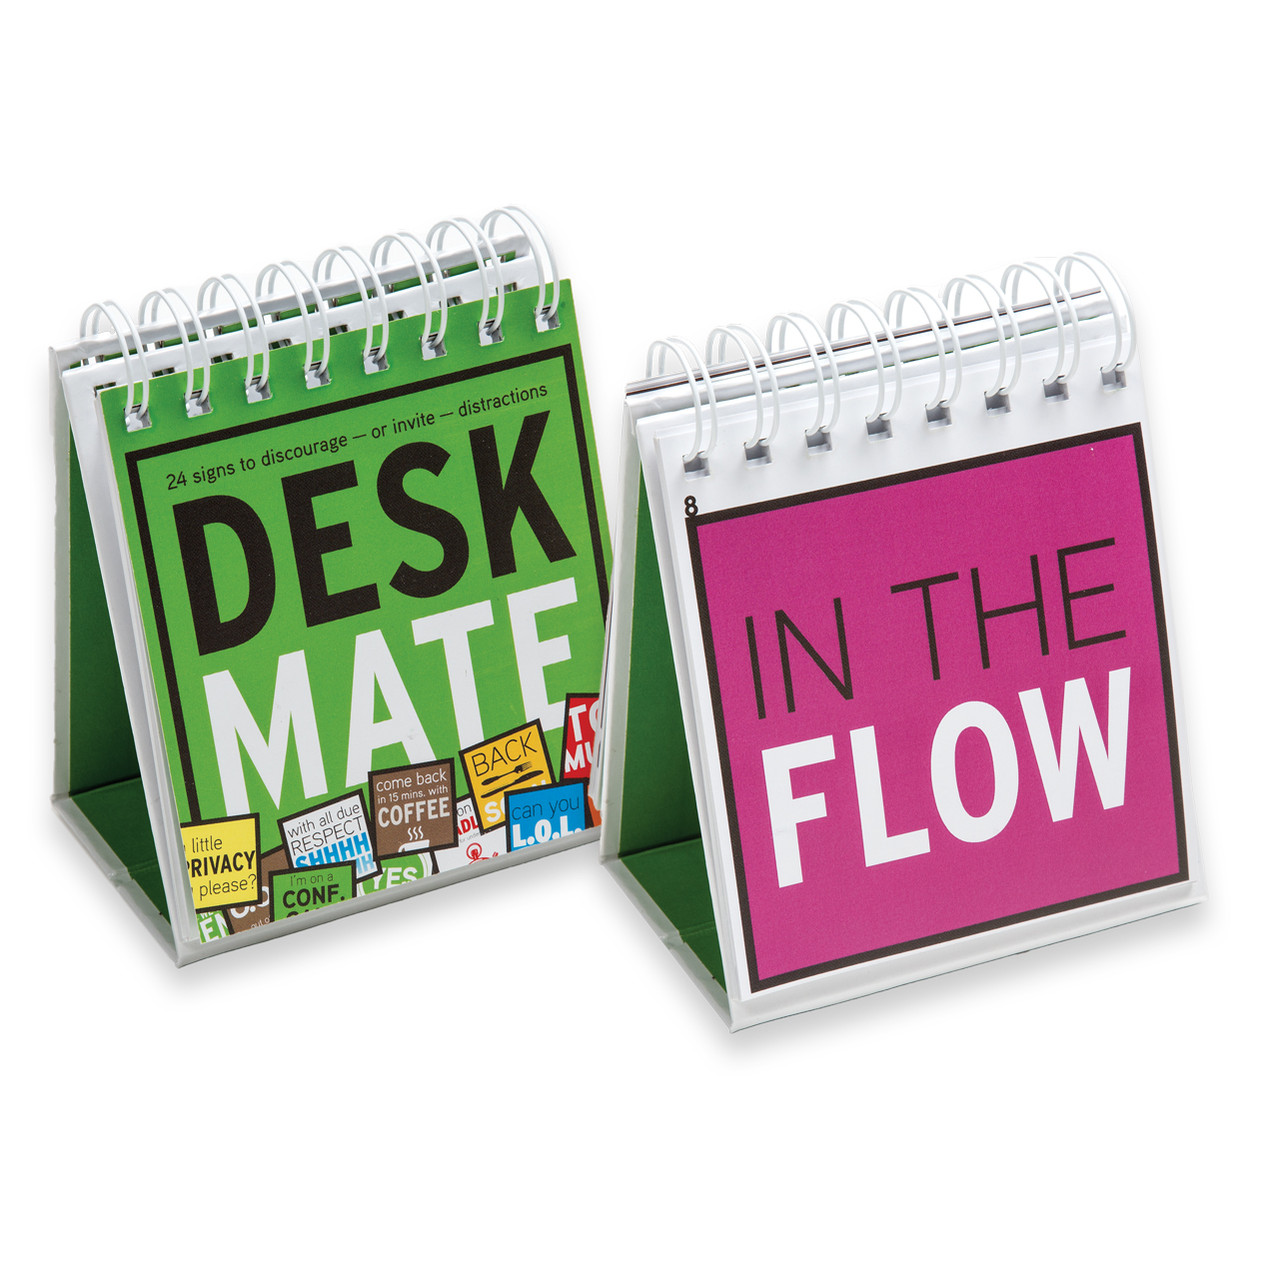 DeskMate, front and one inside sign